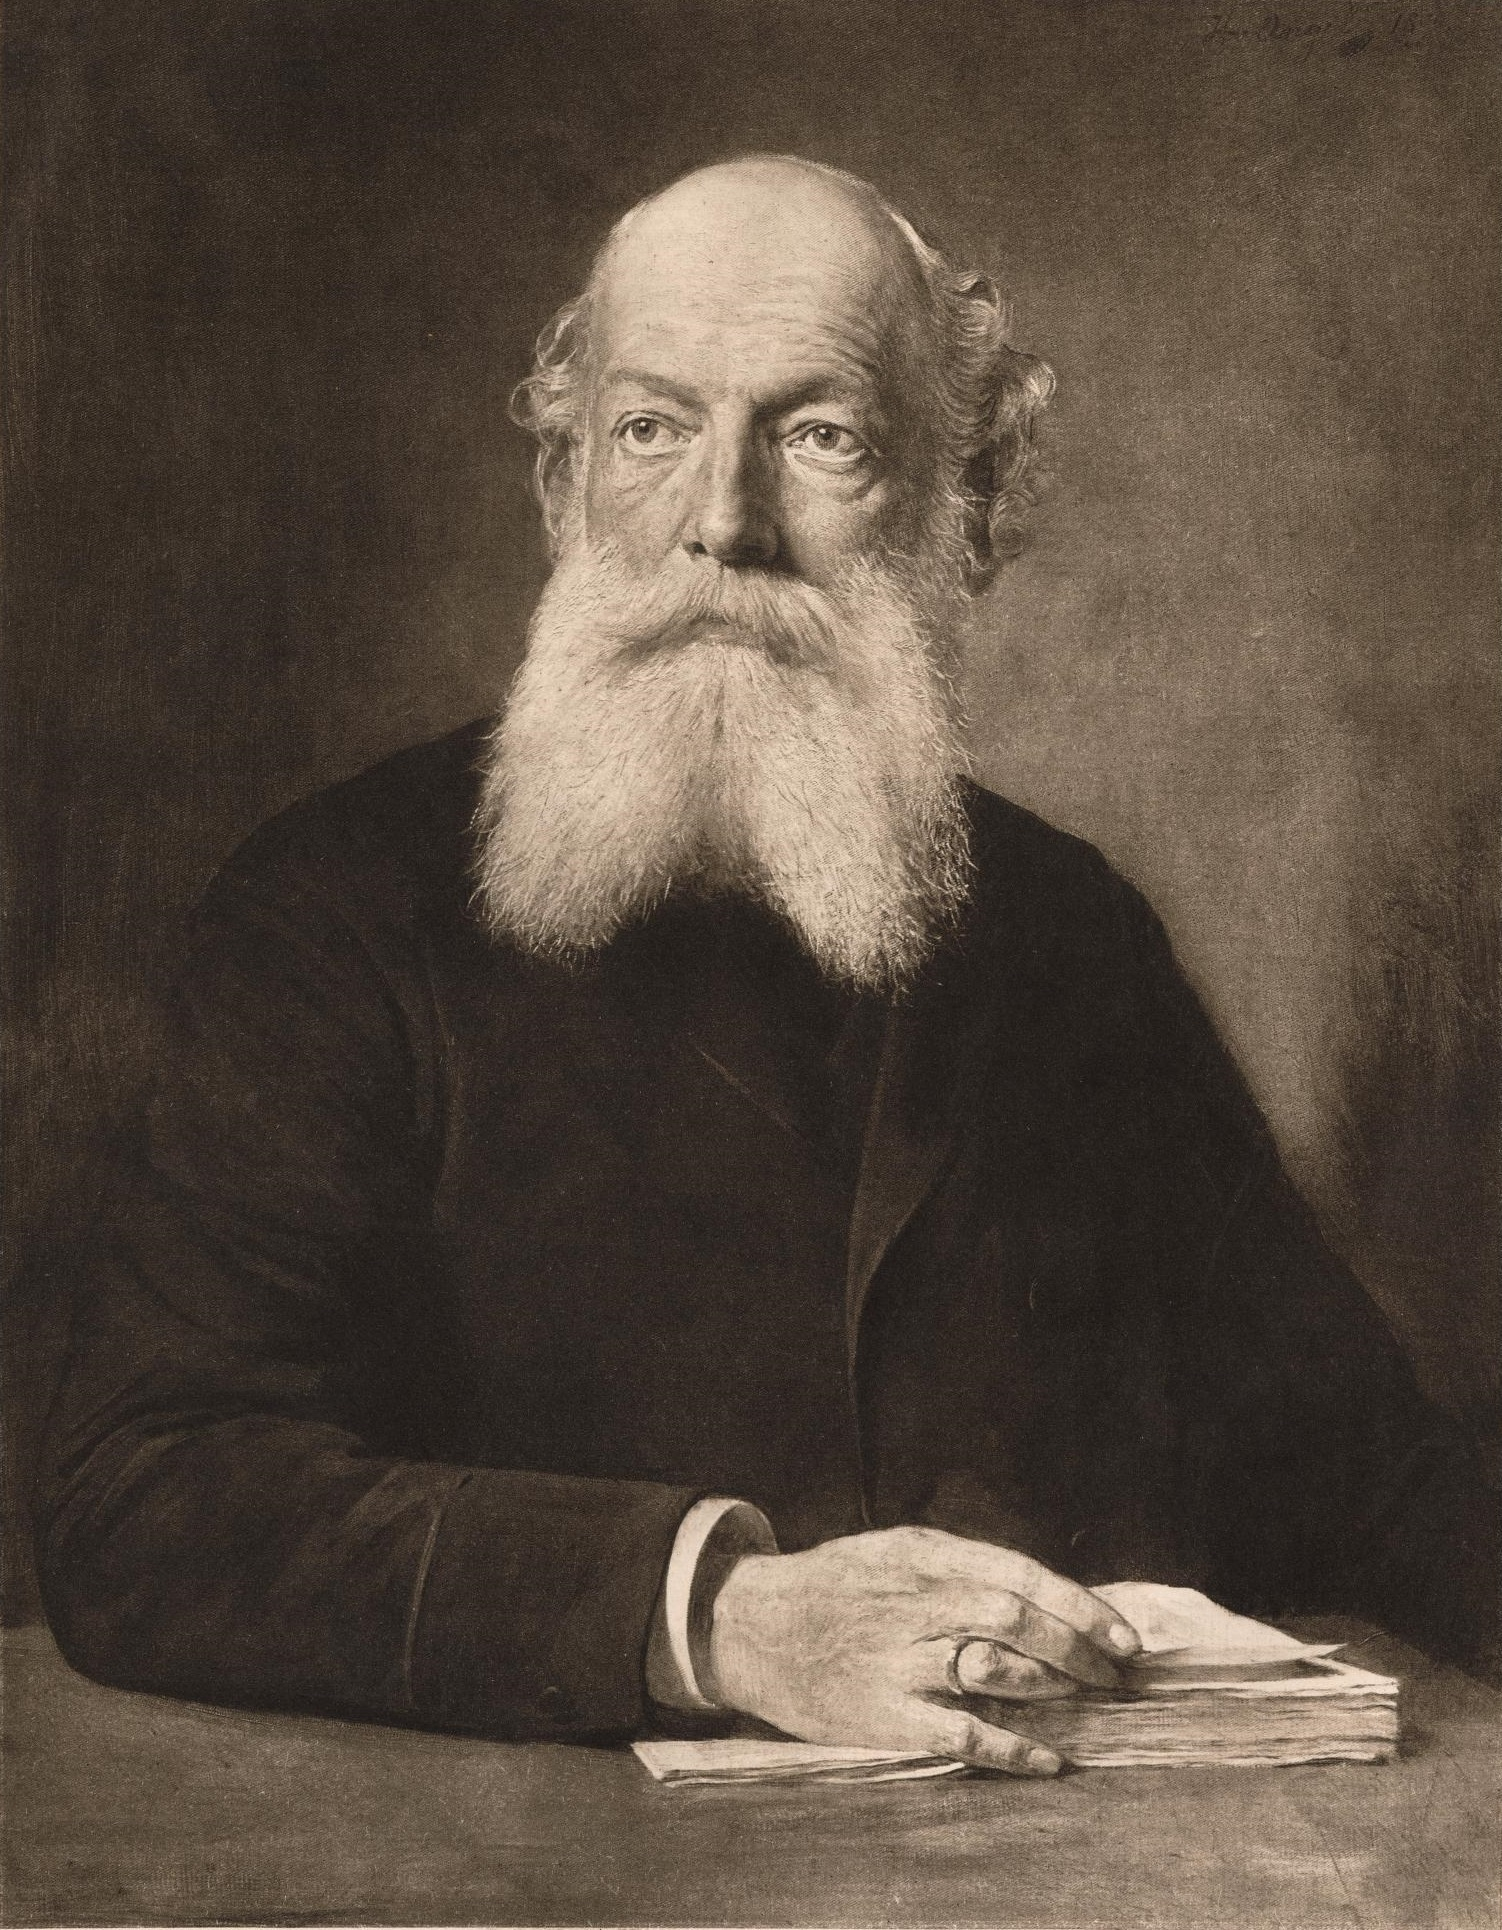 Portrait of August Kekulé, commissioned by German dye companies for his 60th birthday.